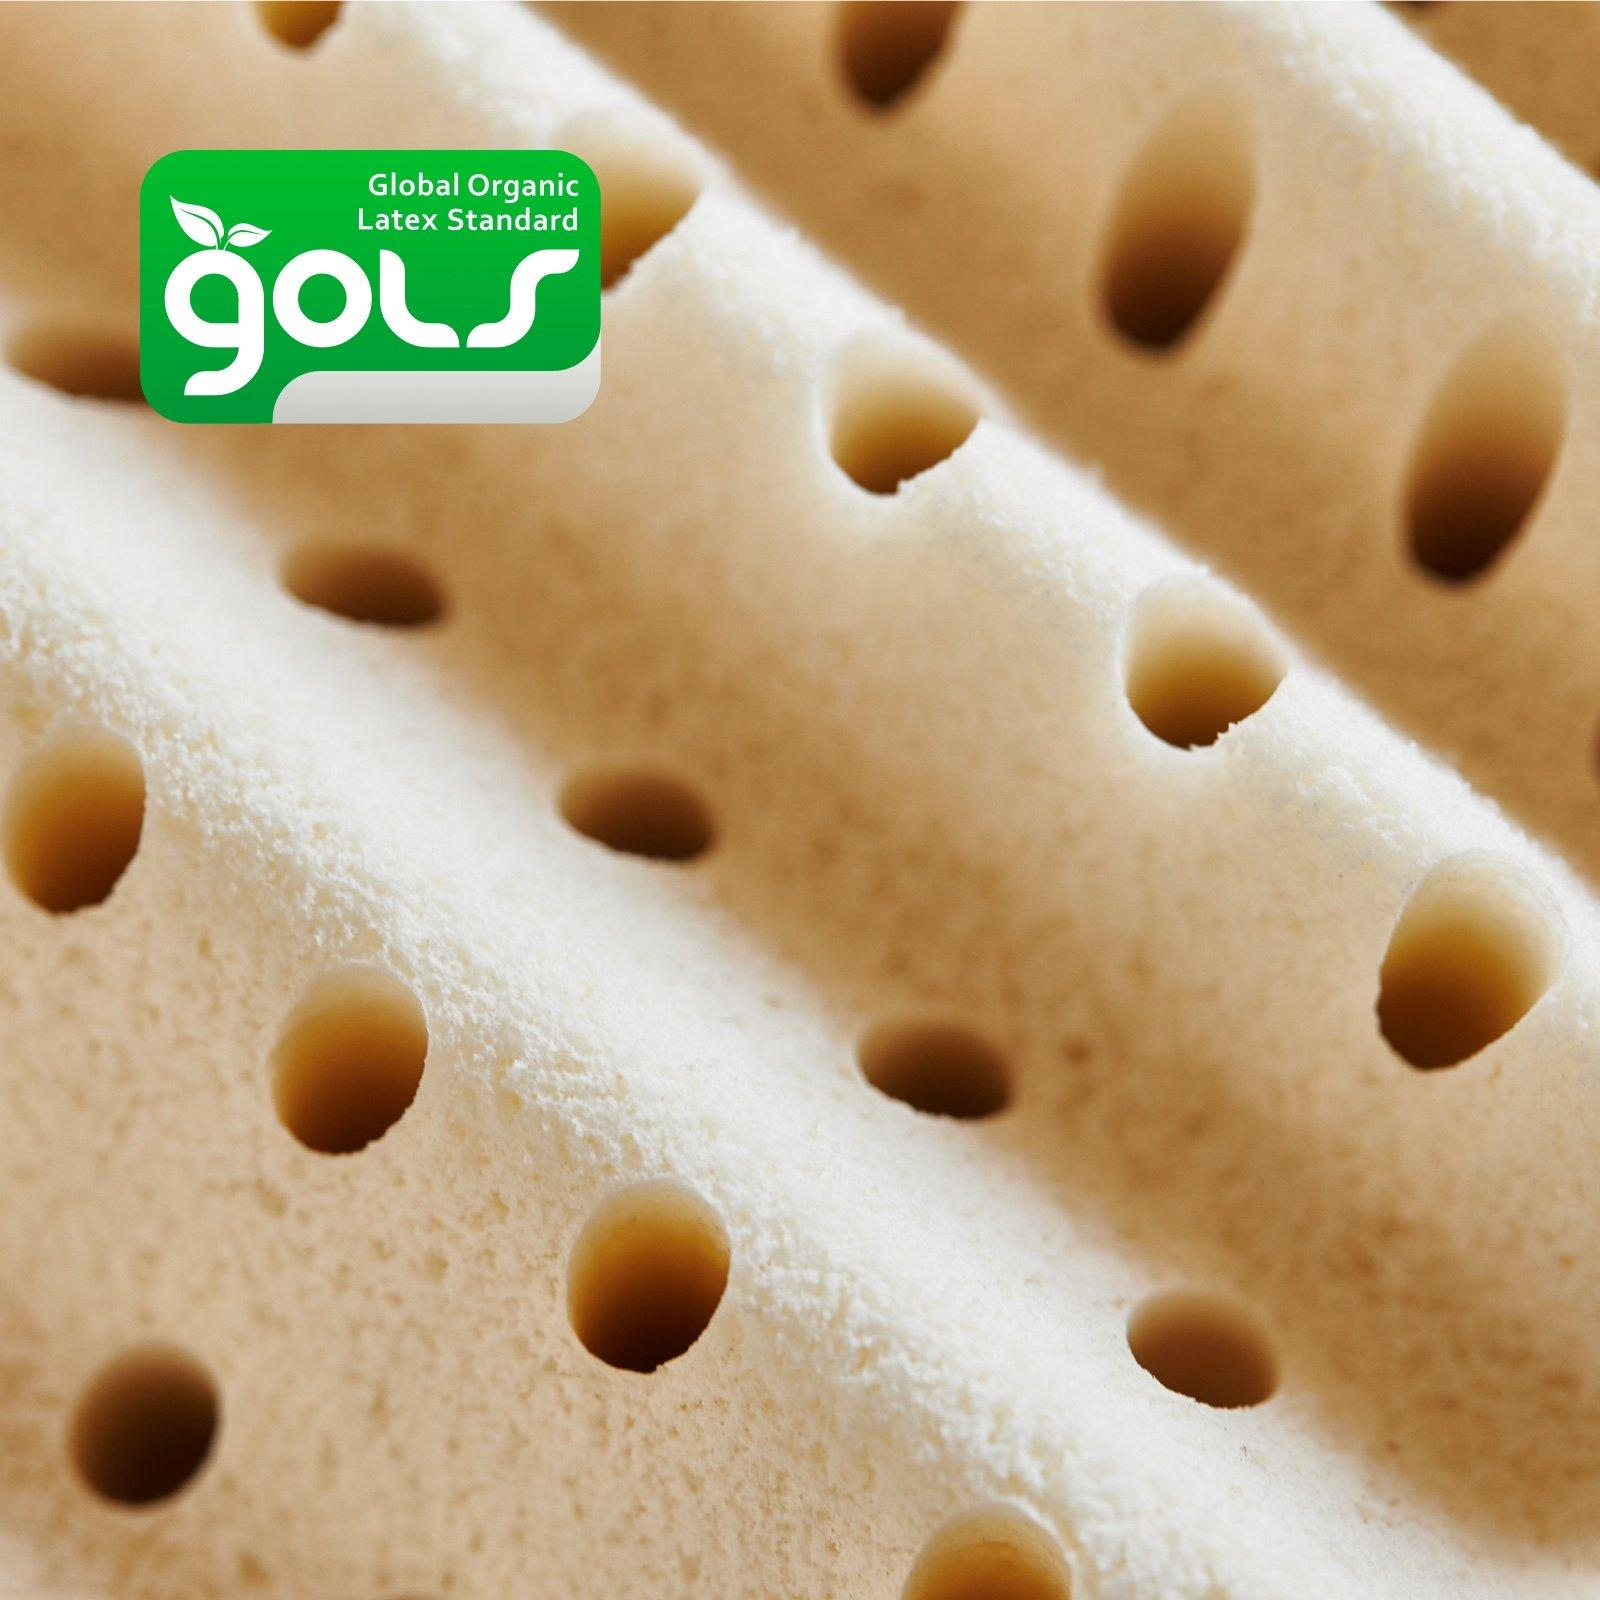 The 4-inch Dunlop latex layer is GOLS certified.